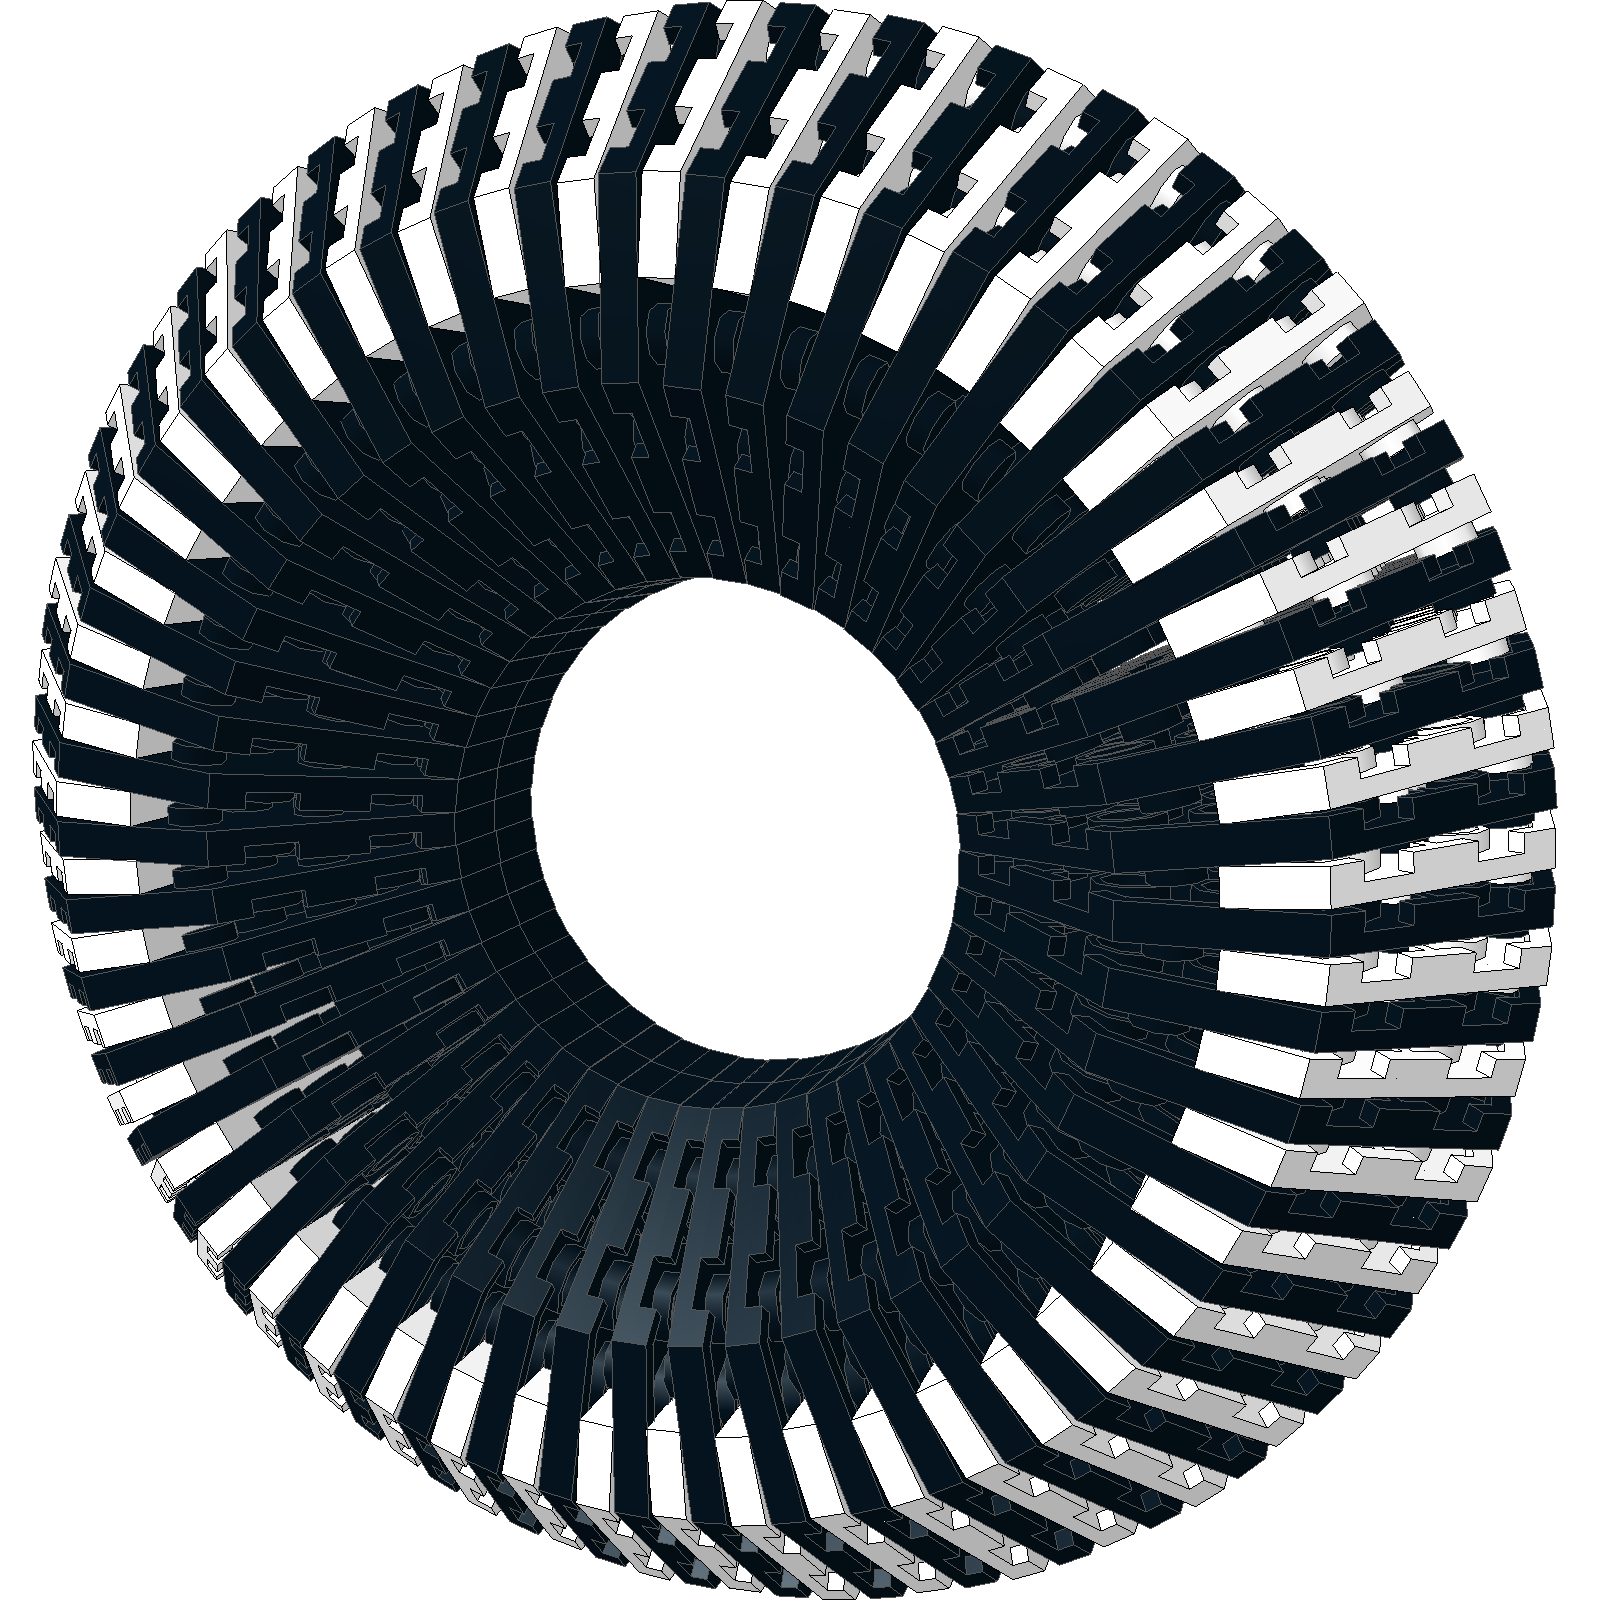 pages/21.tech/wedge-plate-3x6-torus/image.png